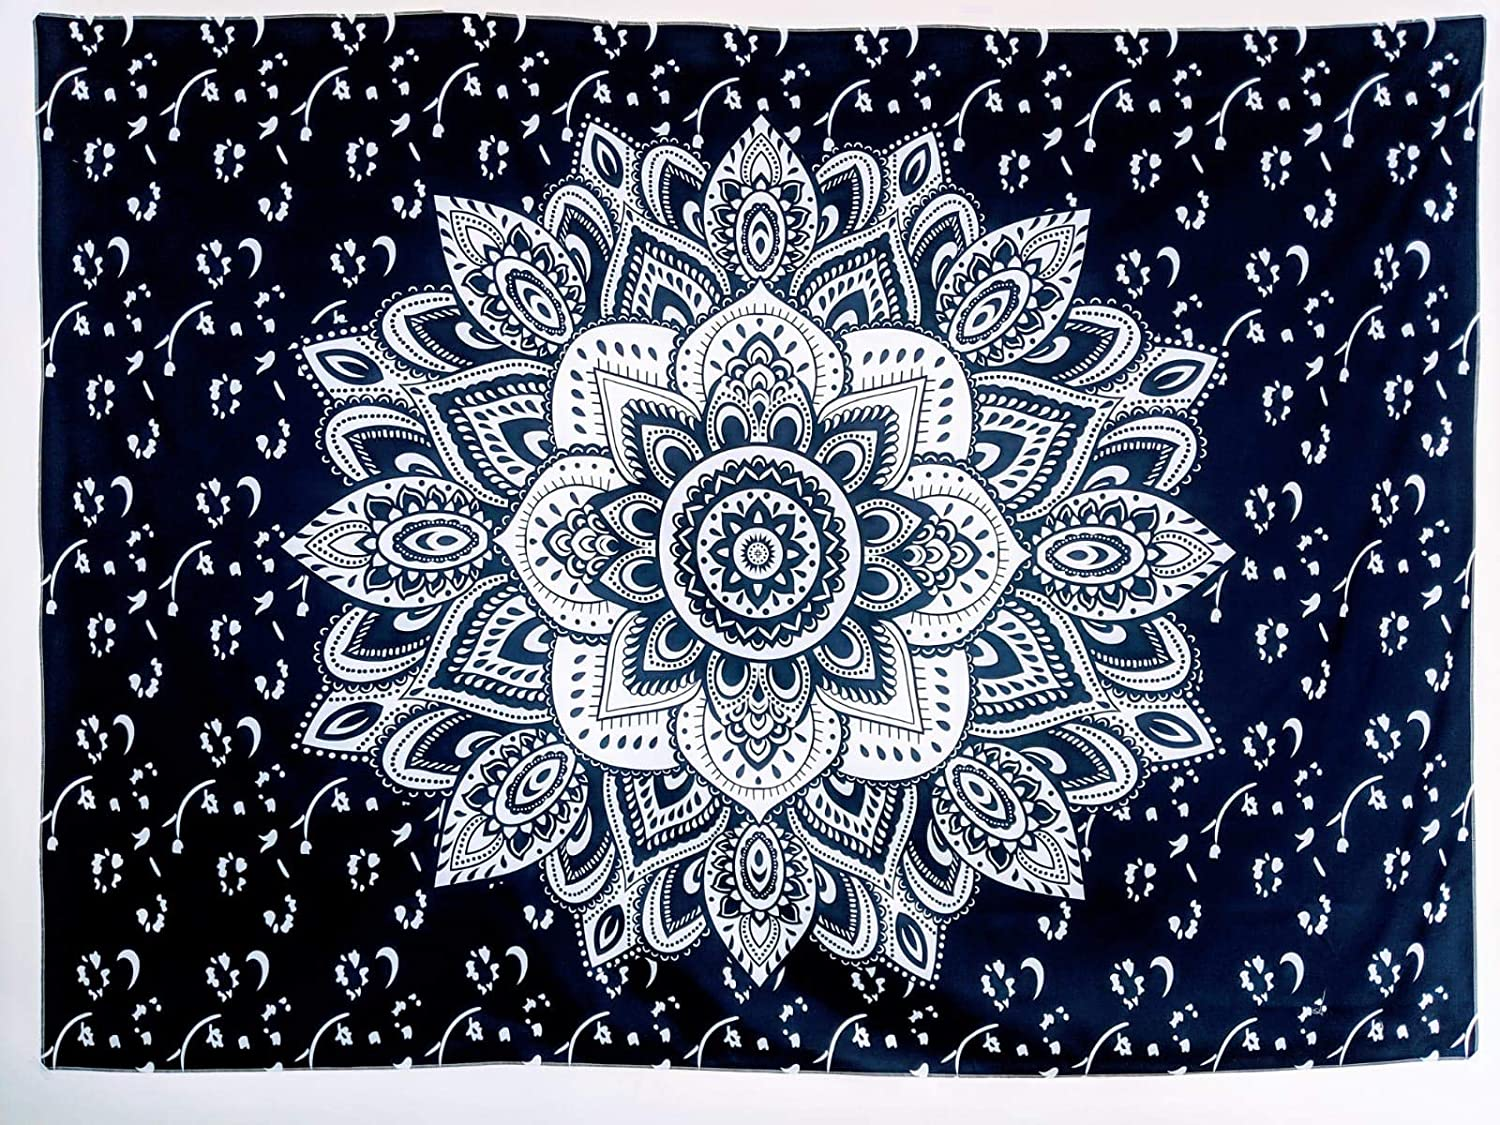 Amazon Com Baik Batik Mandala Bohemian Hippie Floral Tapestry Wall Hanging Bedding Table Top Queen Monochrome Ombre Navy Blue 80x60inches 200x150cm Home Kitchen